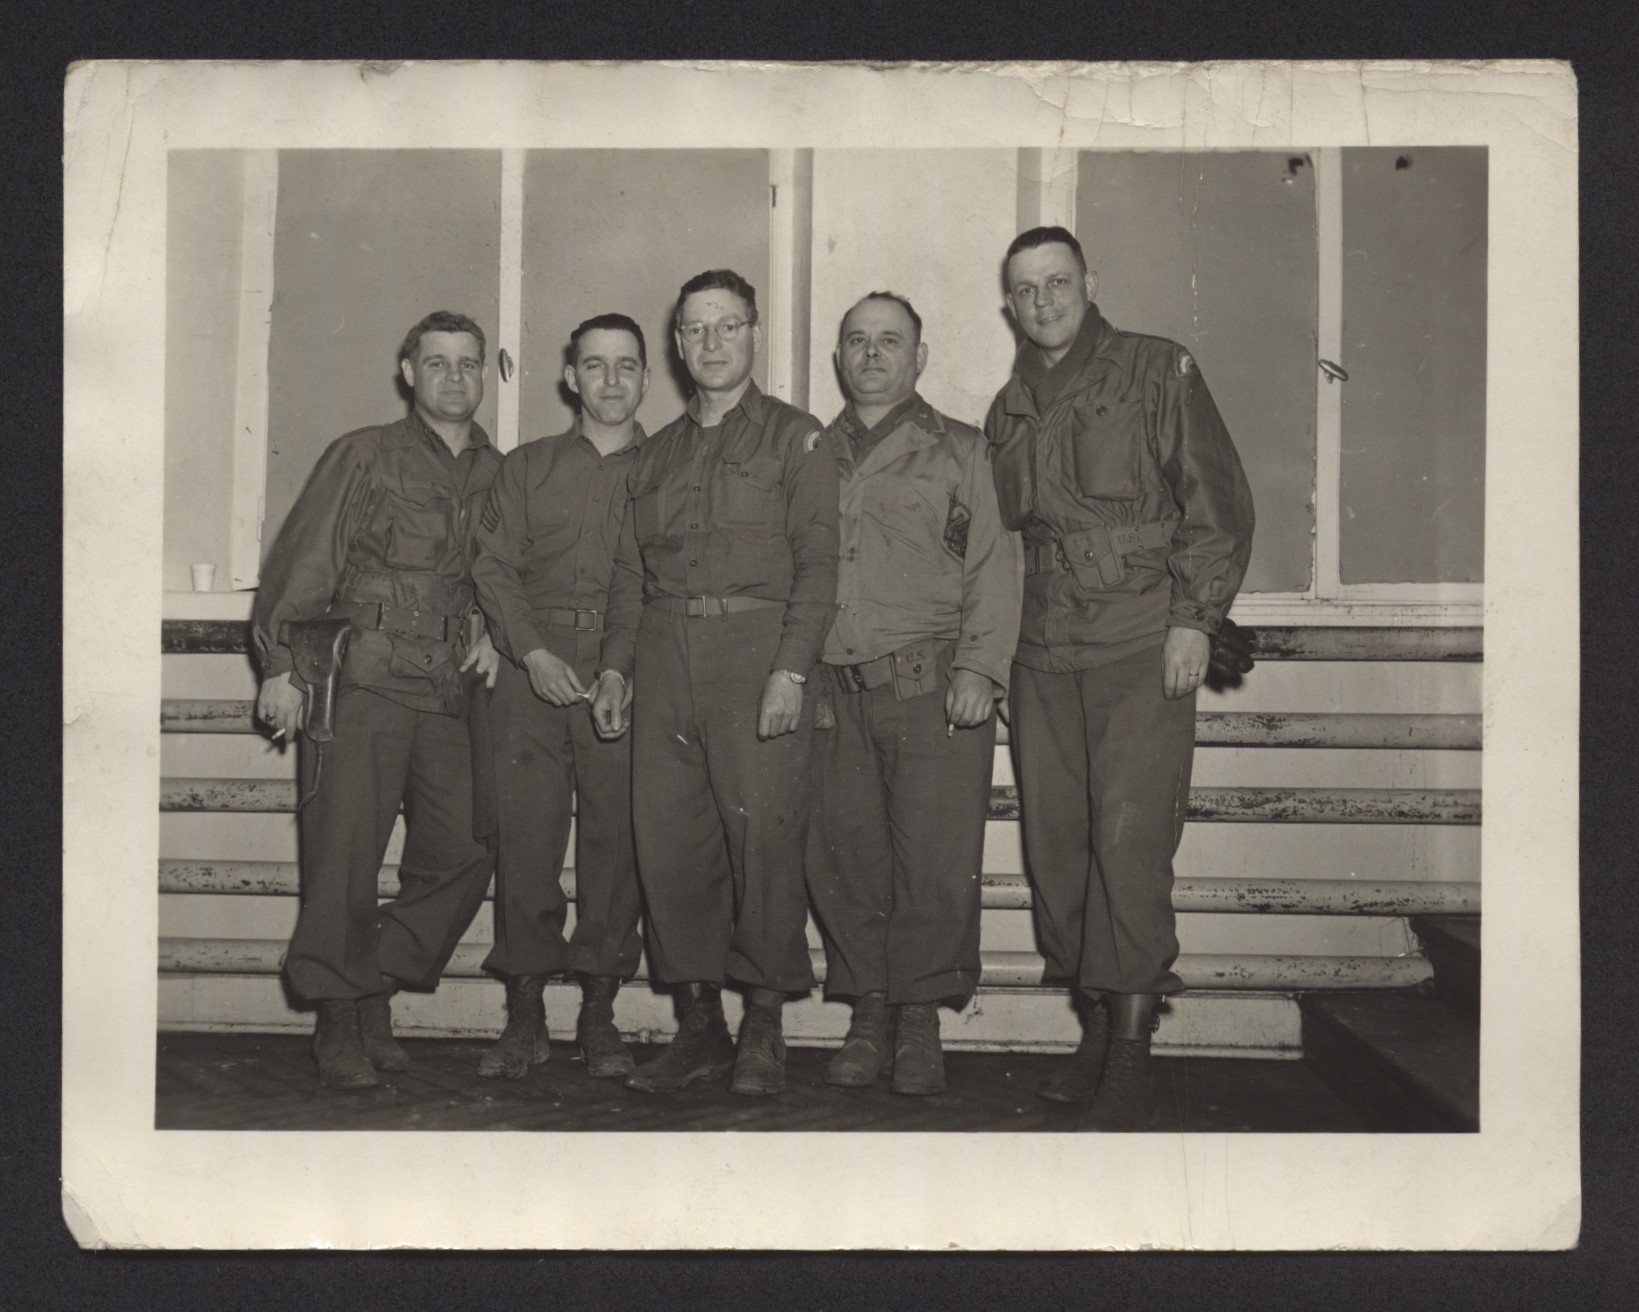 Group portrait of American GIs from the 42nd Rainbow Division.  Rabbi Major Eli Bohnen is in the center.